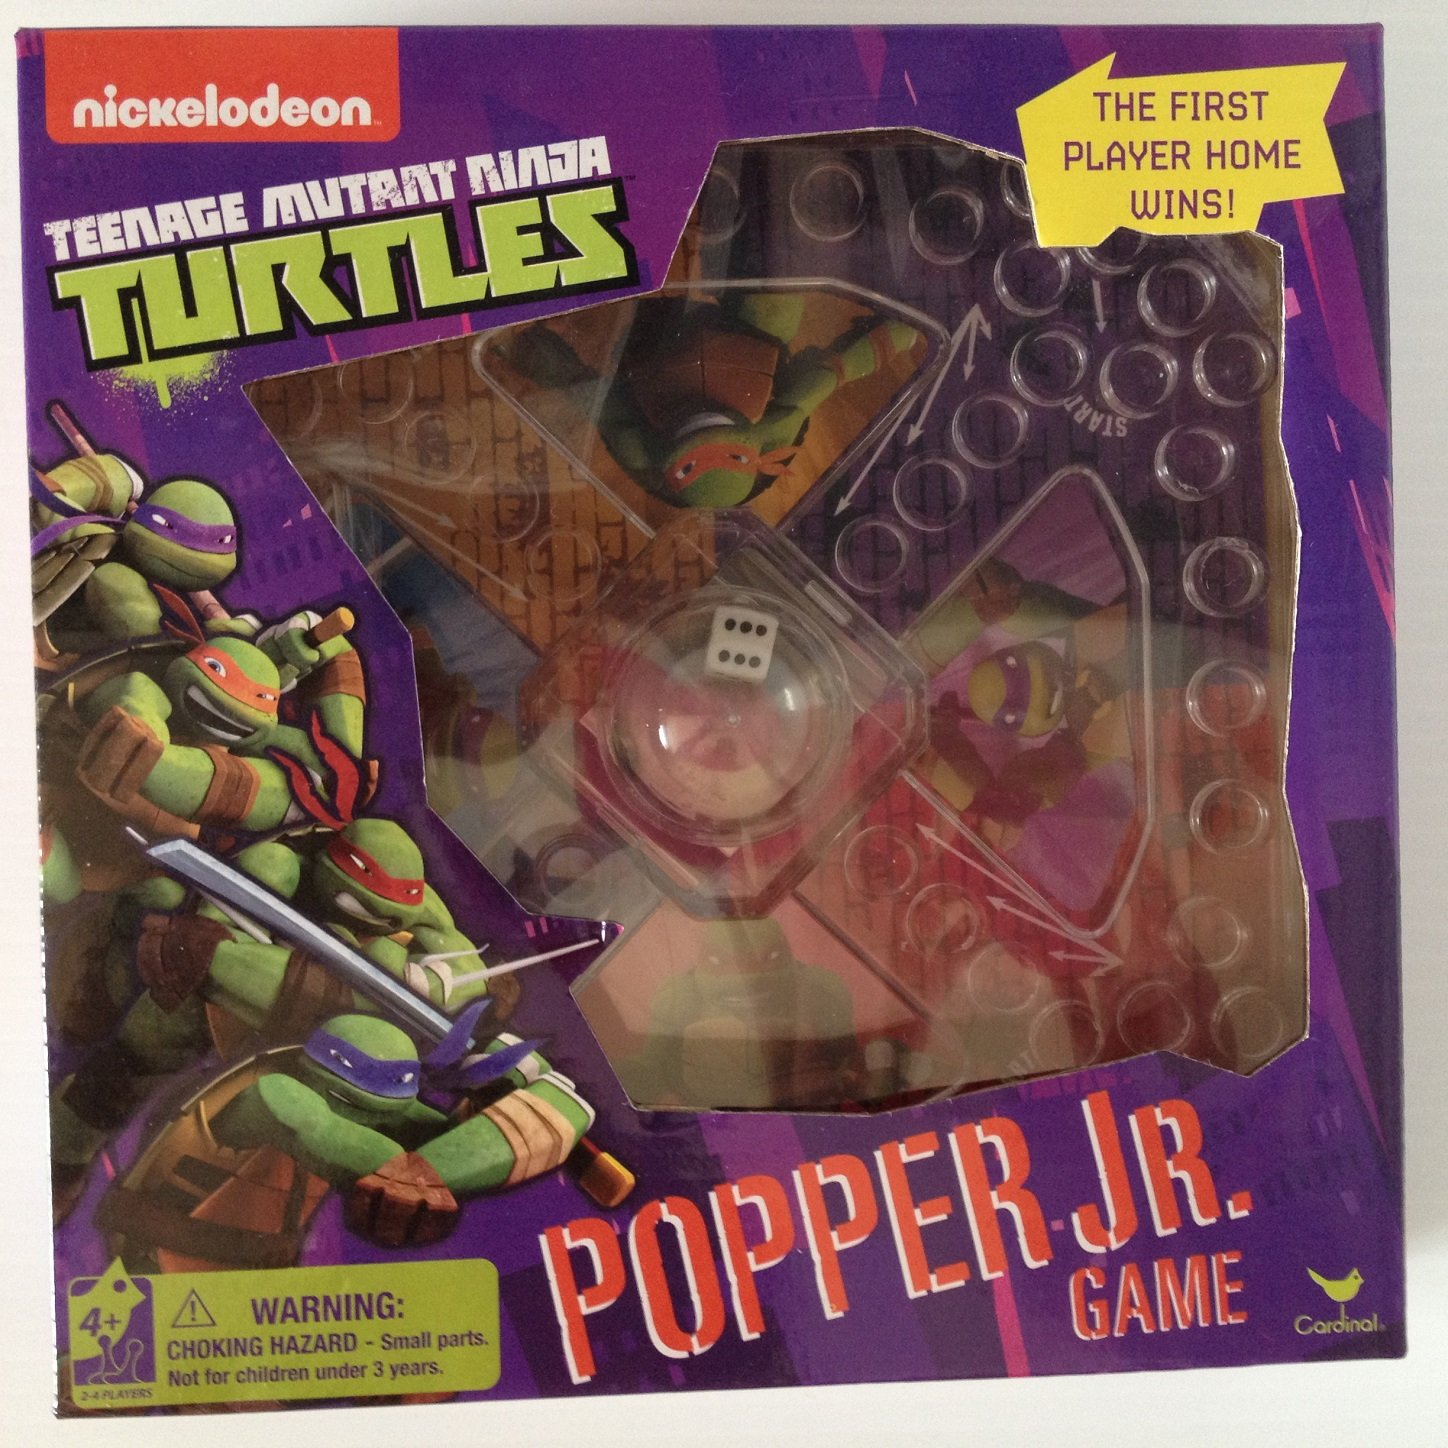 Nickelodeon Teenage Mutant Ninja Turtles Popper Jr Game Nick Jr ...